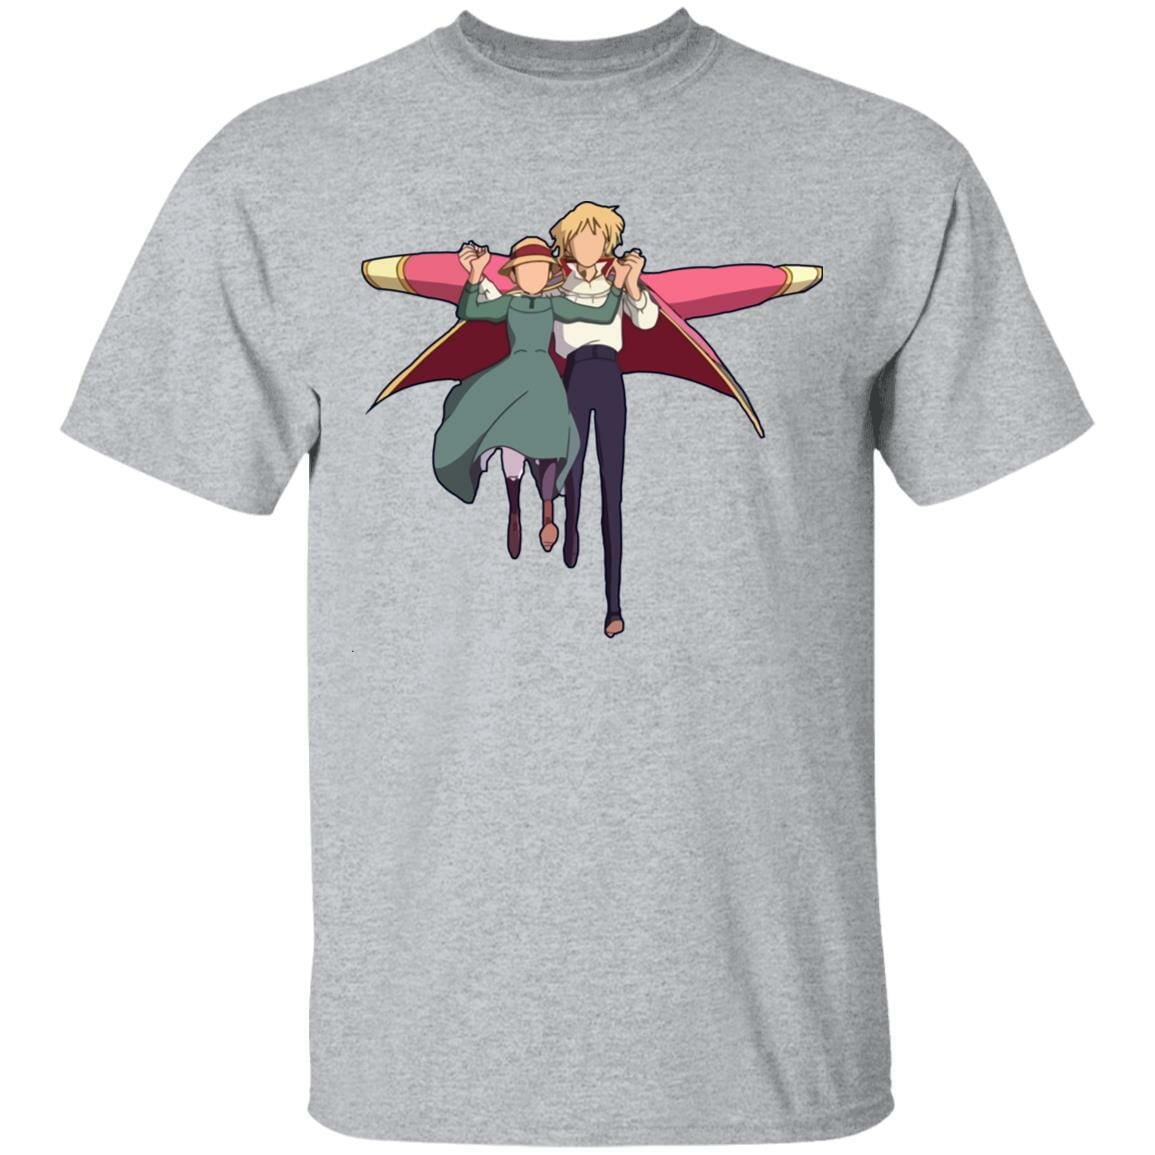 Howl's Moving Castle – Howl and Sophie Running Classic T Shirt